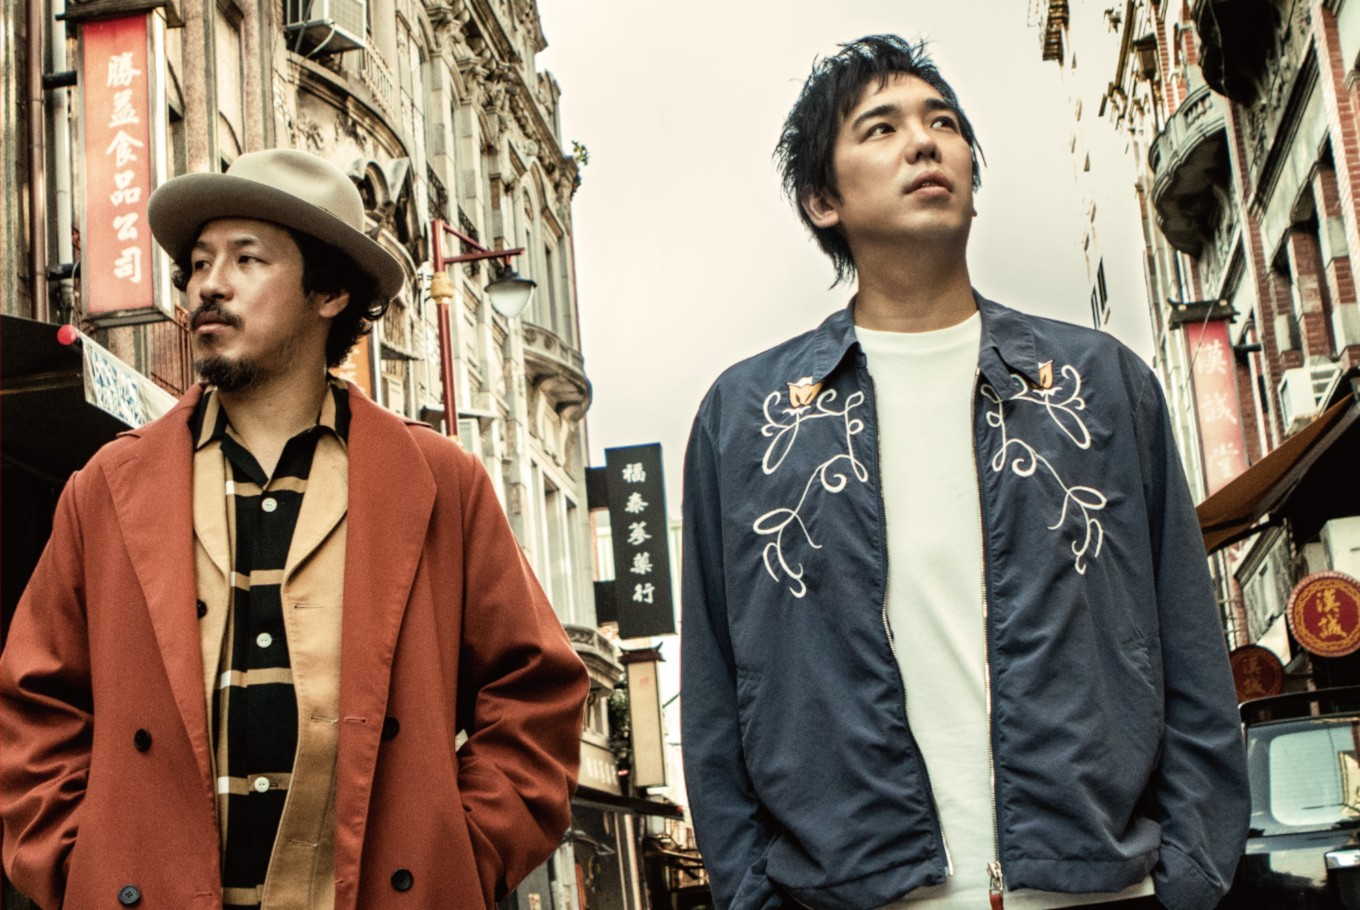 Japanese duo Sukima Switch to perform in Indonesia in March